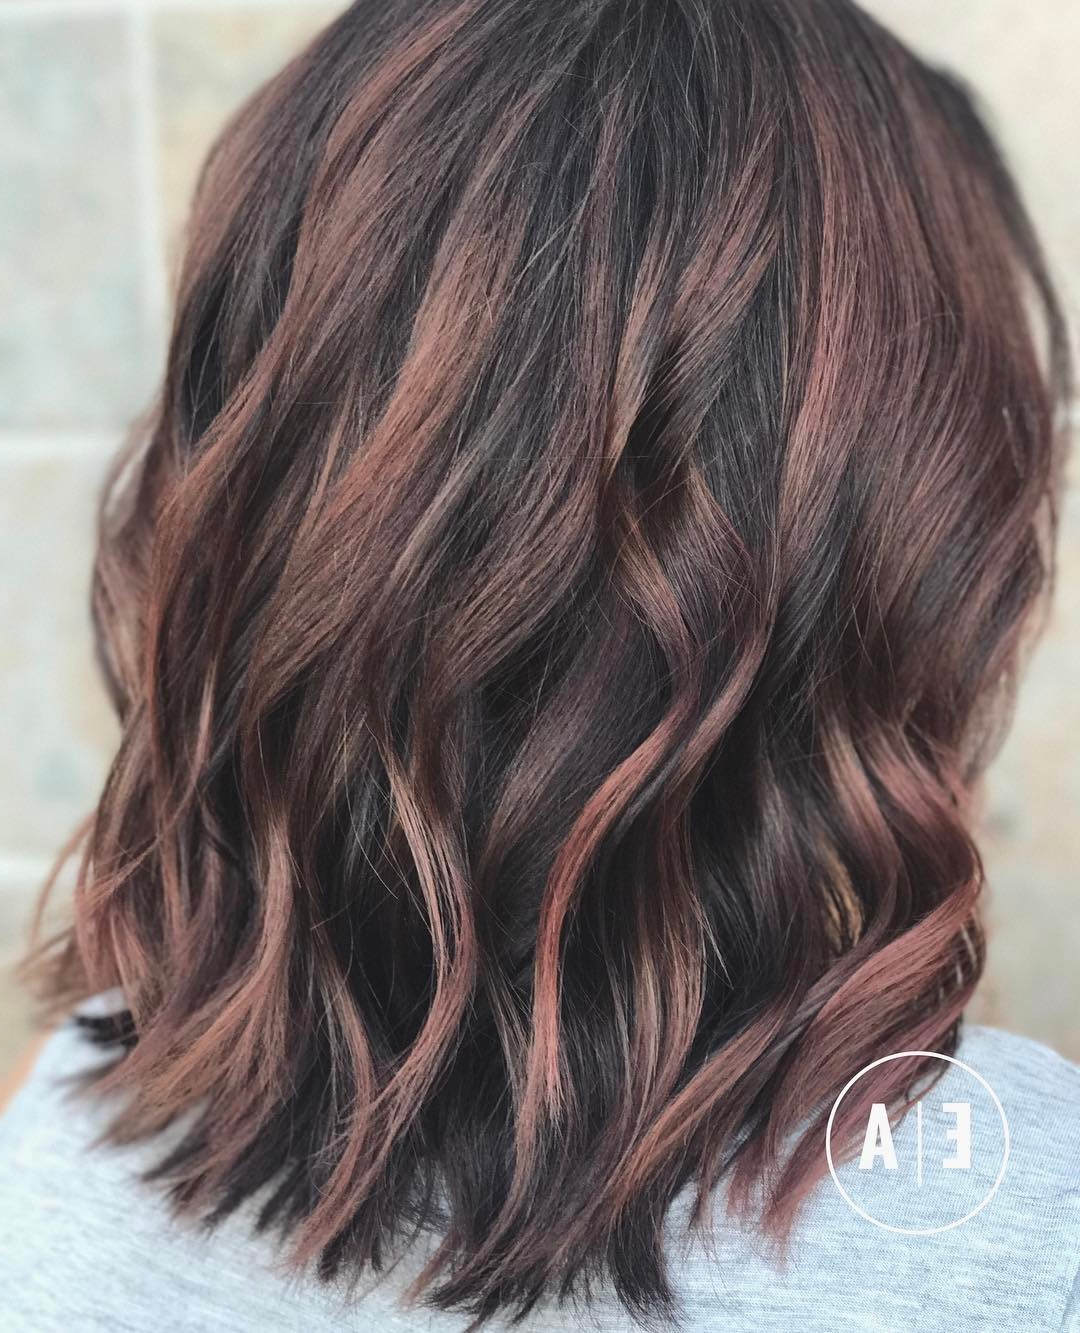 10 Balayage Hair Styles For Medium Length Hair 2019 – Freshen Up Pertaining To Popular Medium Haircuts With Red Color (View 1 of 20)